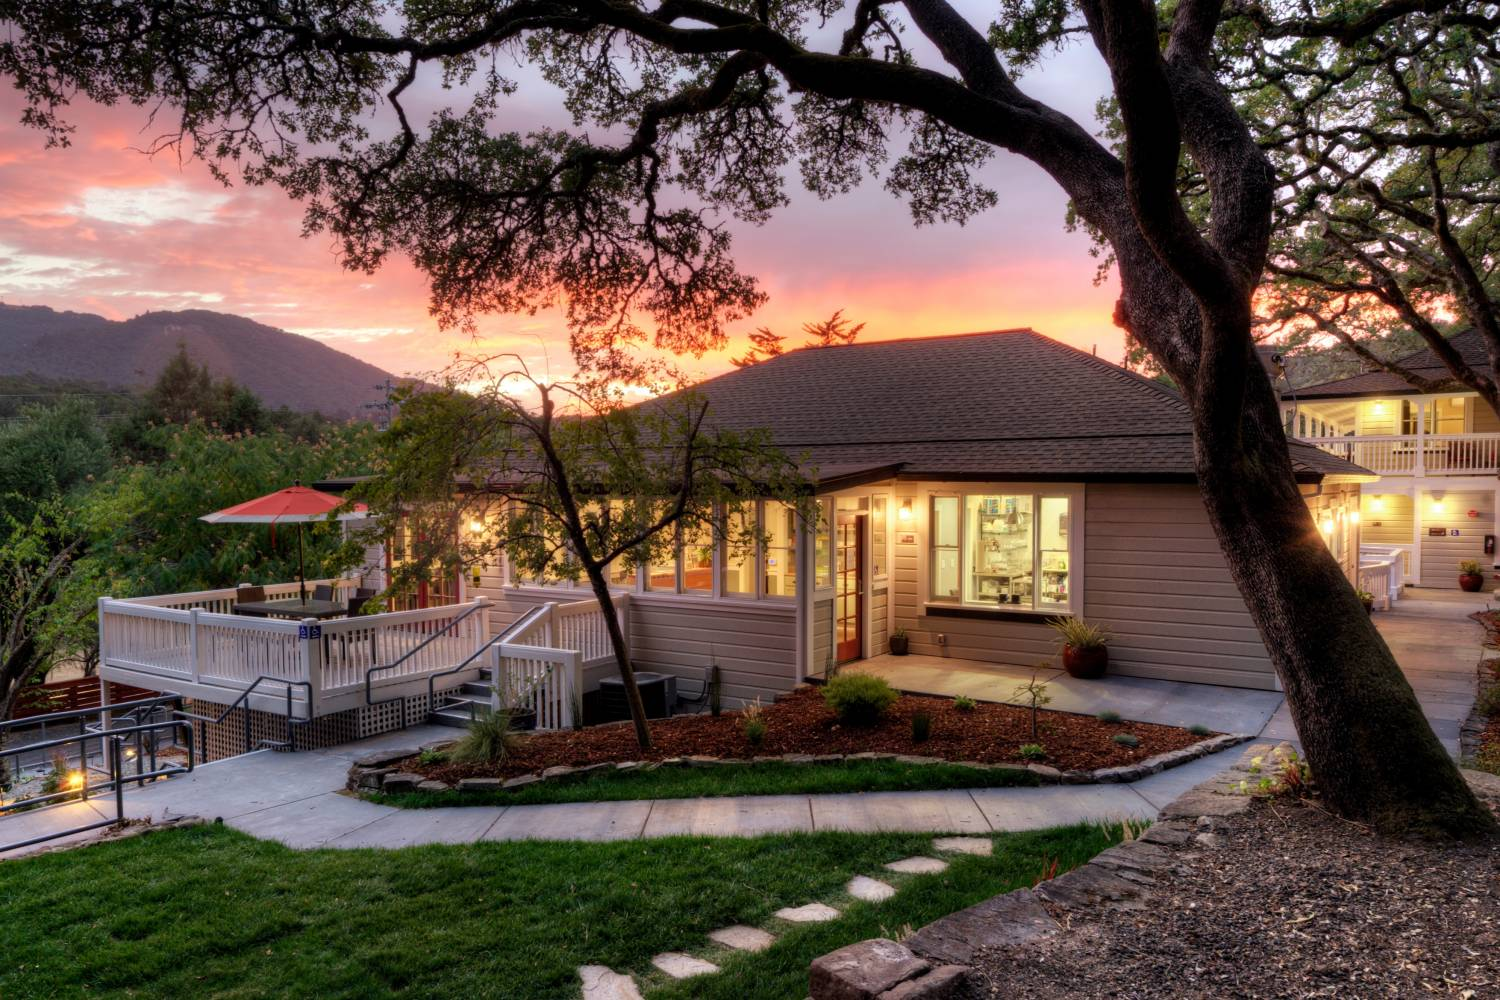 Enjoy a private chef after an amazing day in Glen Ellen California